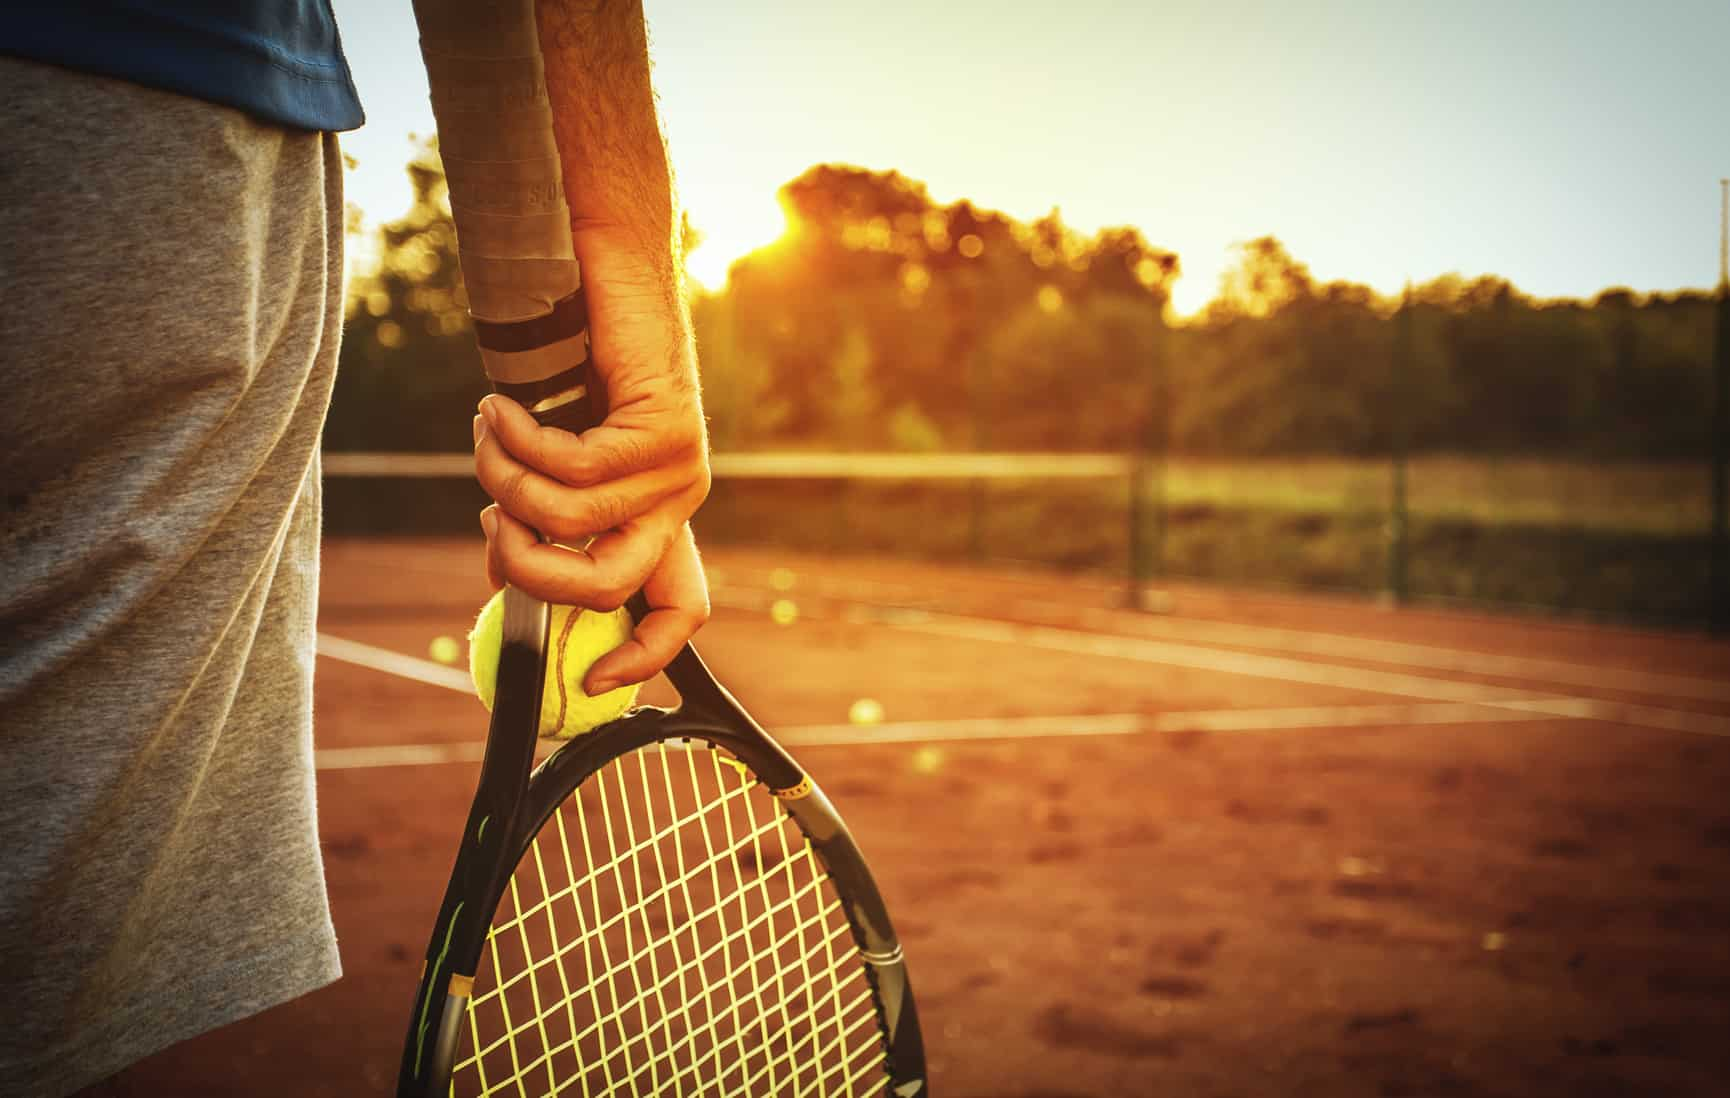 Betting on tennis opponents of legal sports betting